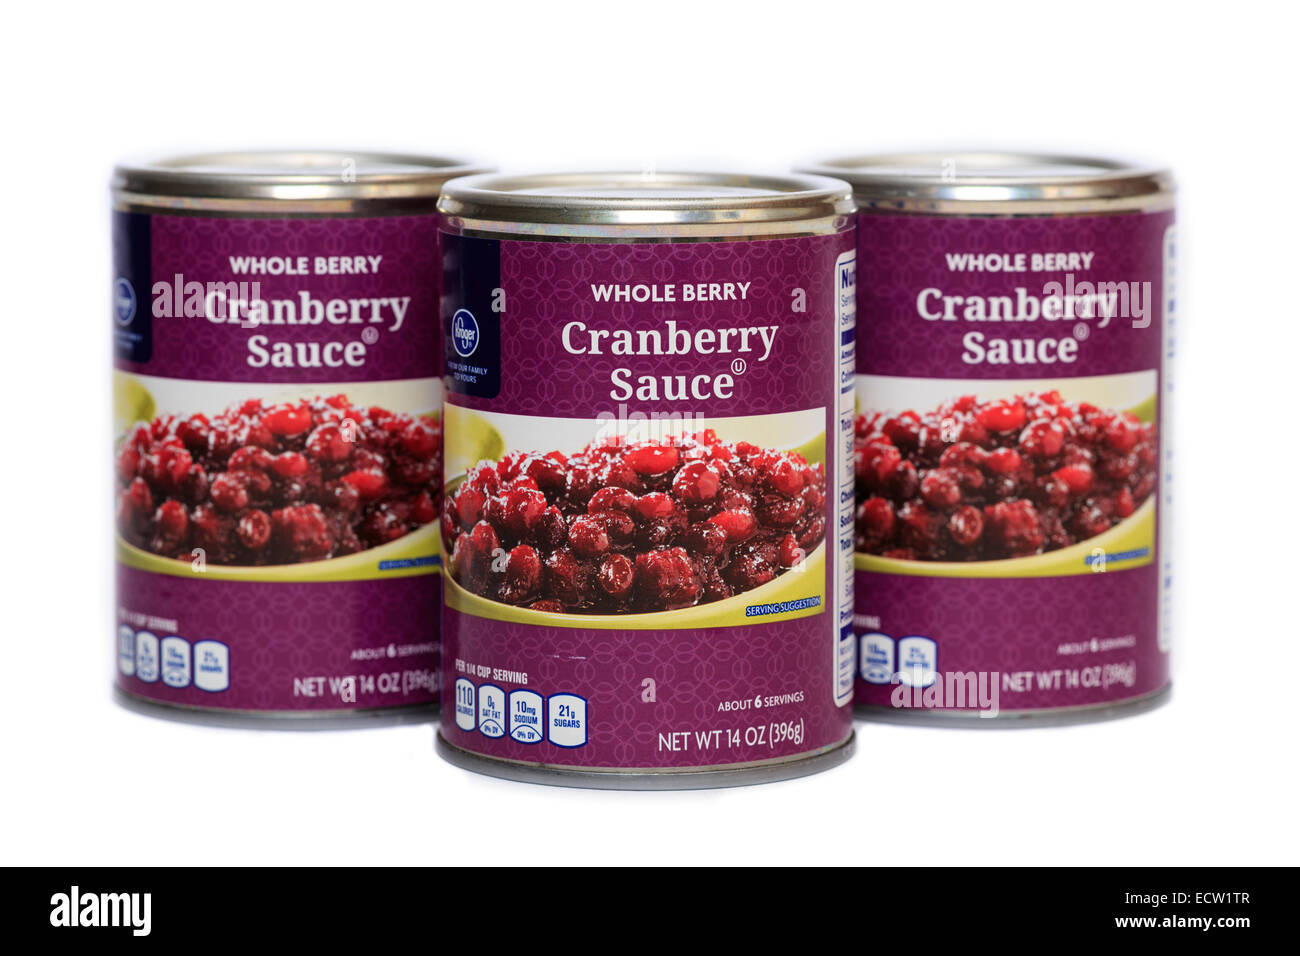 Kroger Brand Canned Whole Berry Cranberry Sauce Stock Photo